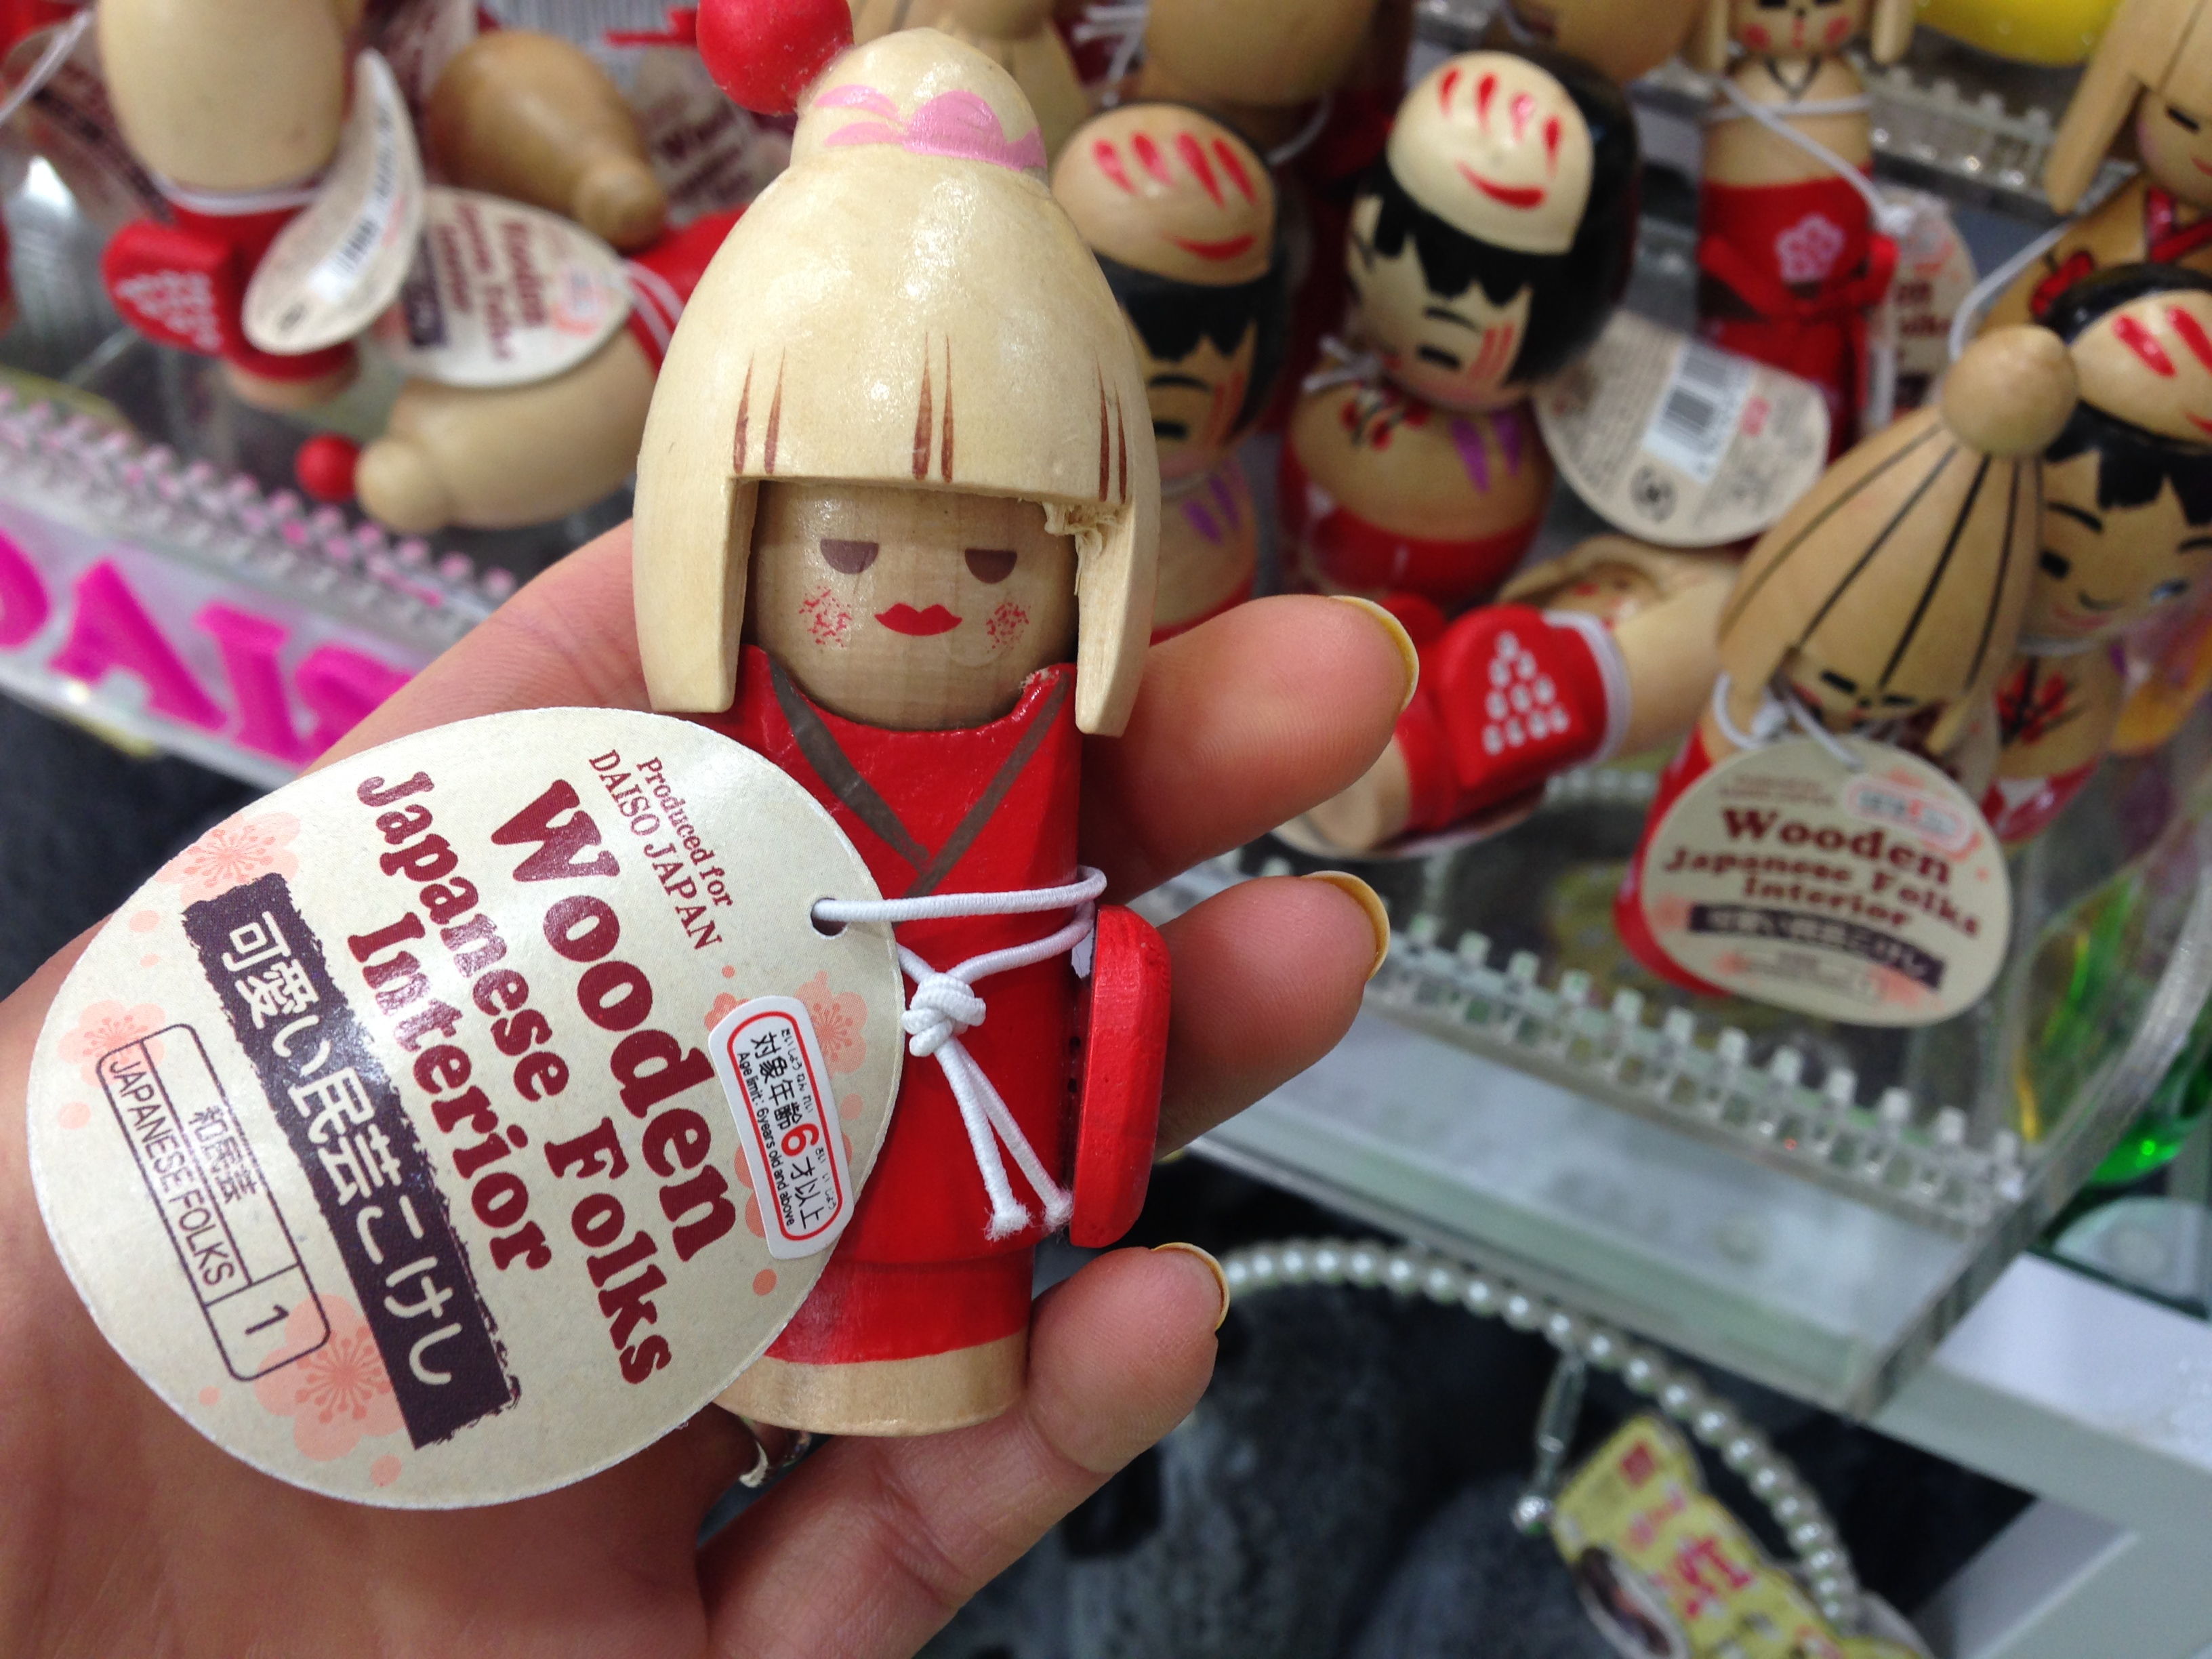 This wooden towheaded doll lady is capturing my heart the same way the random nutcrackers always do every Xmas at Target.